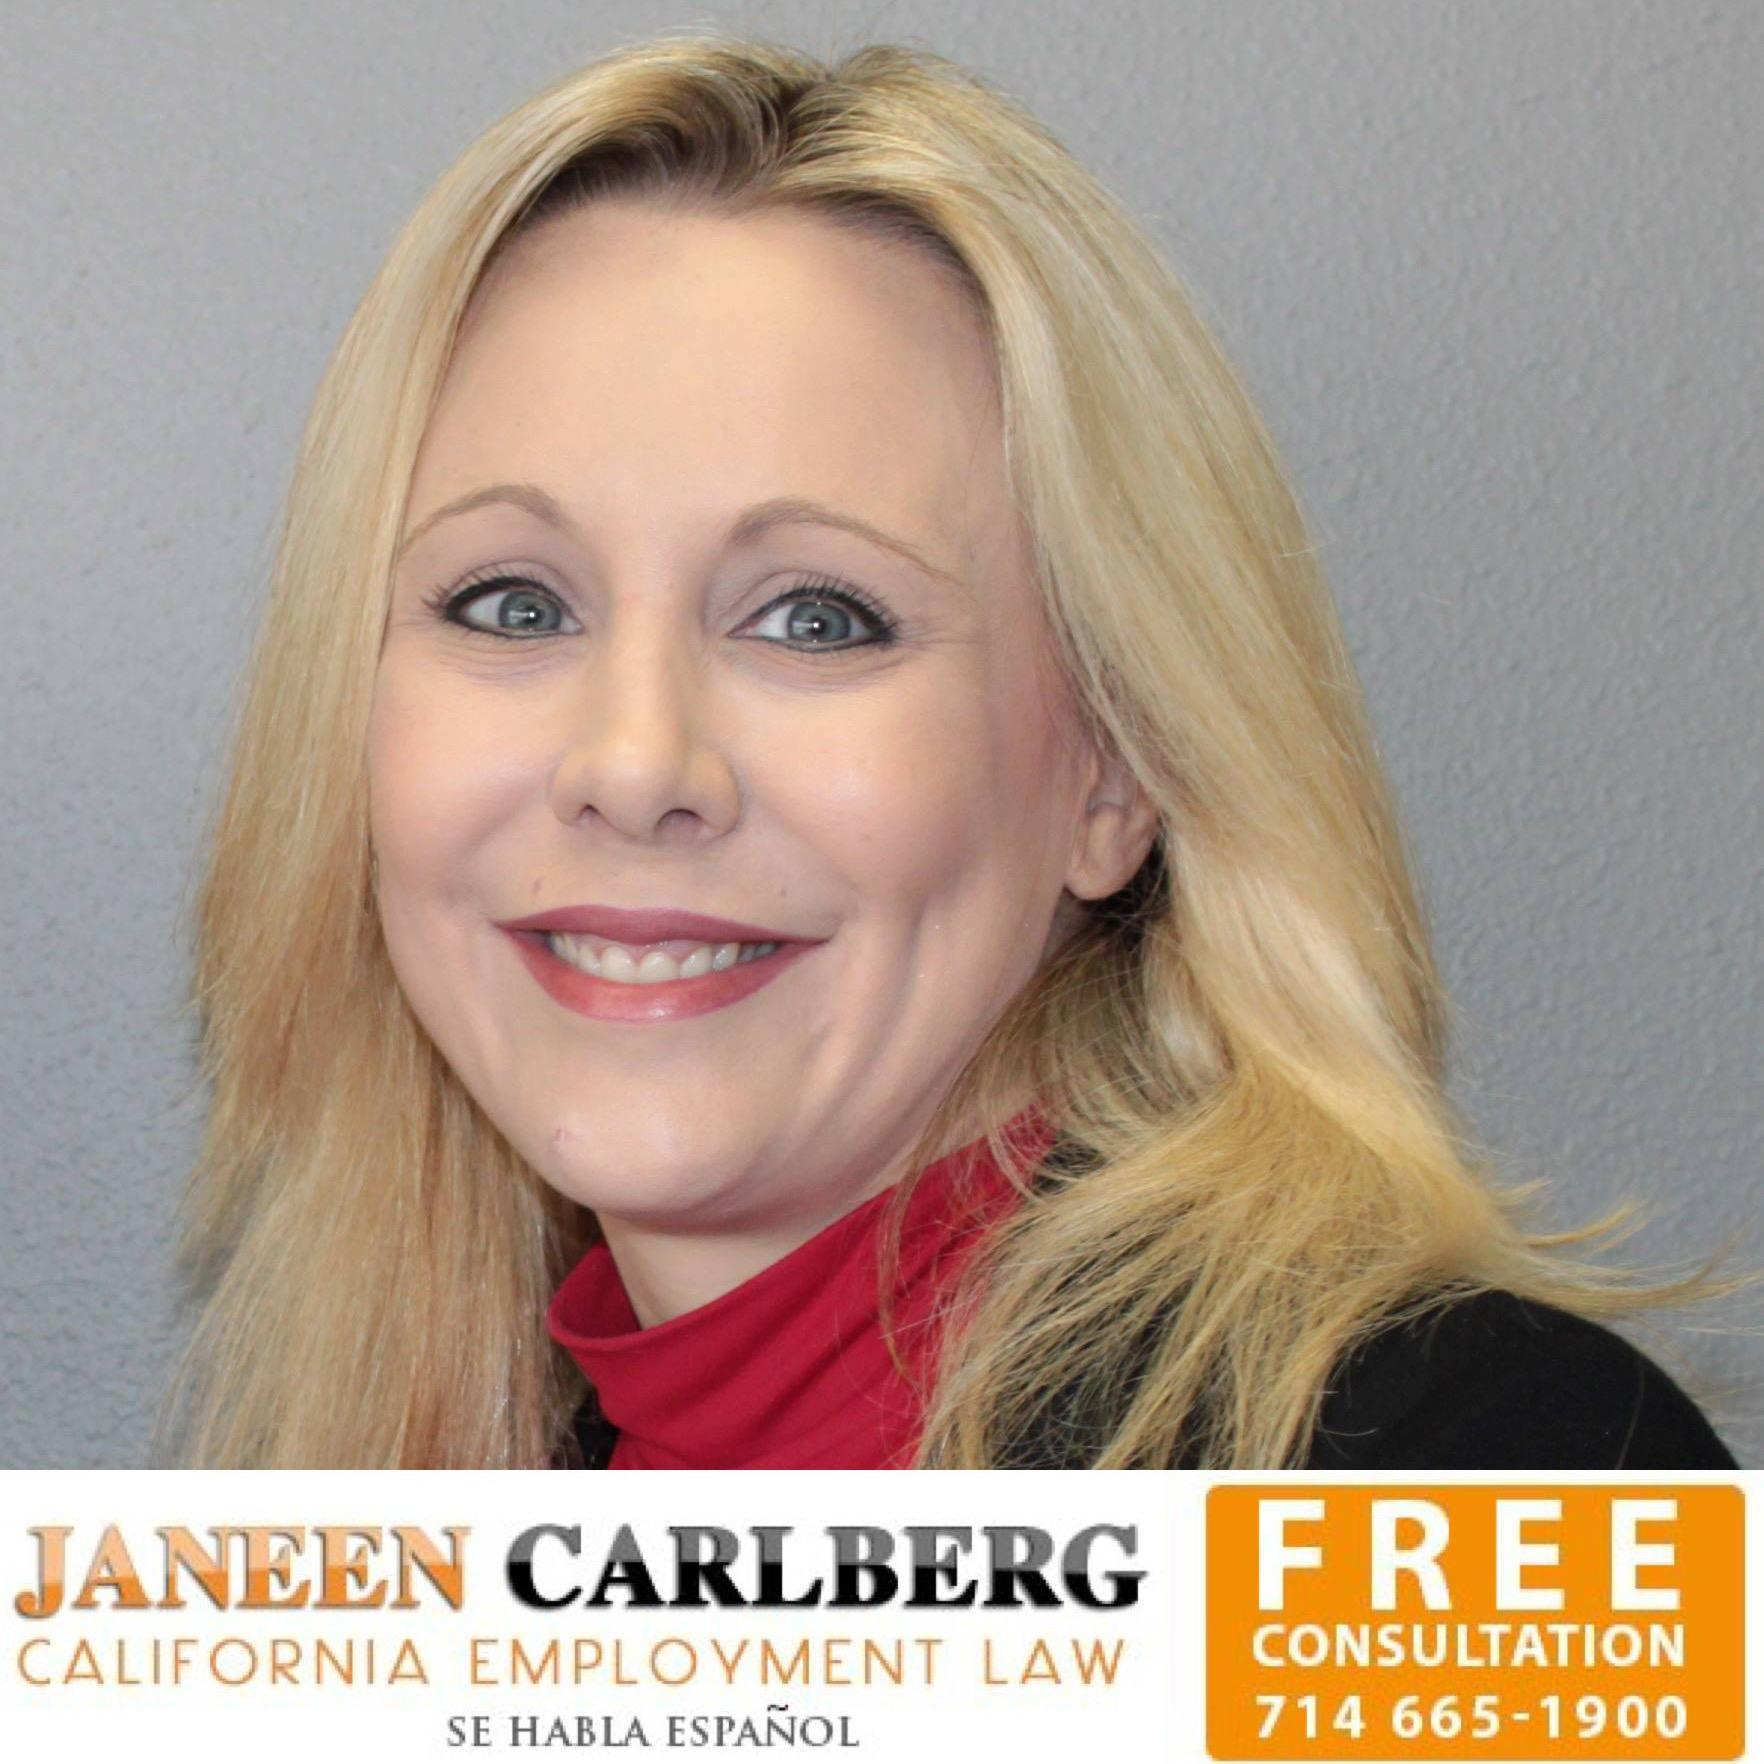 Employment Law Offices of Janeen Carlberg